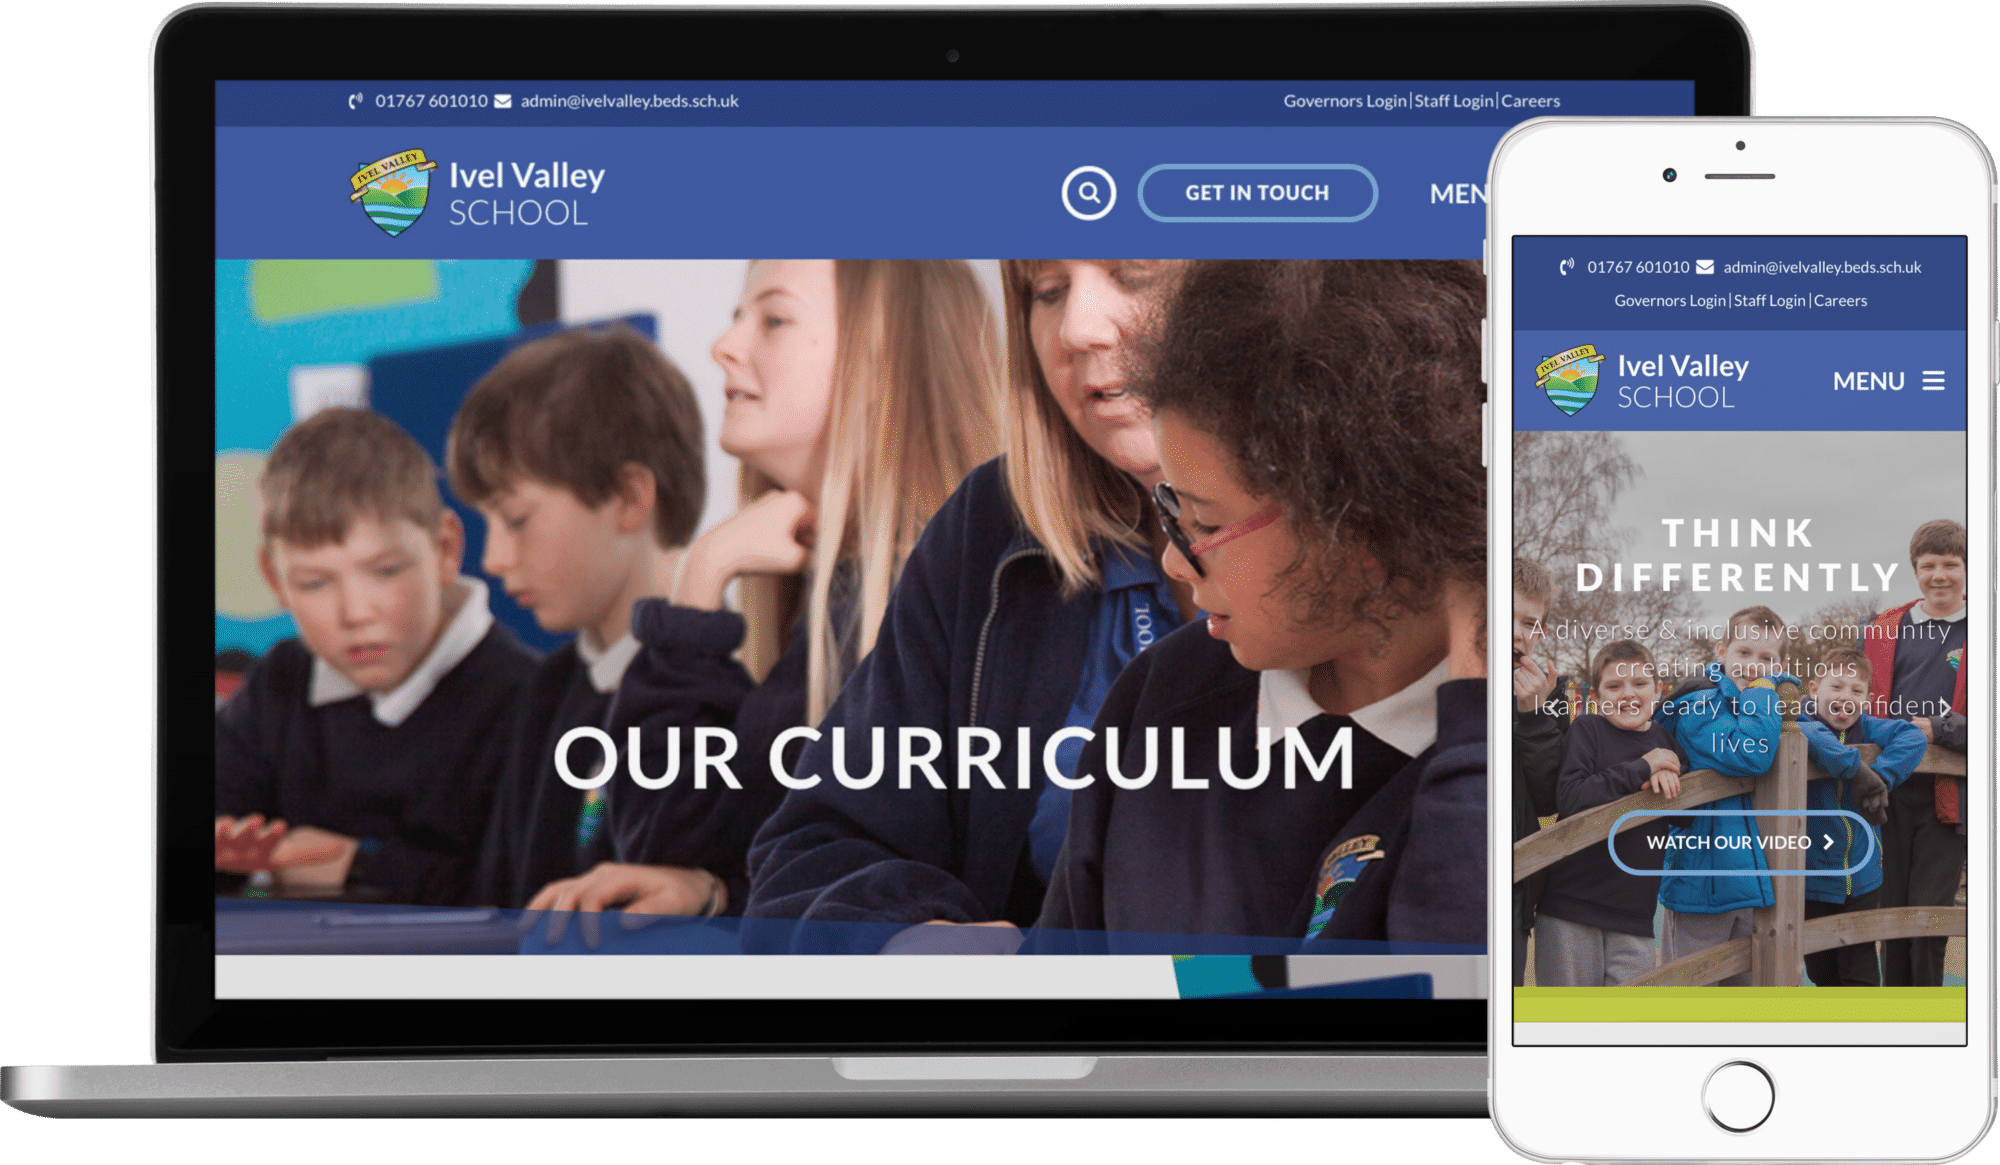 Ivel Valley School website